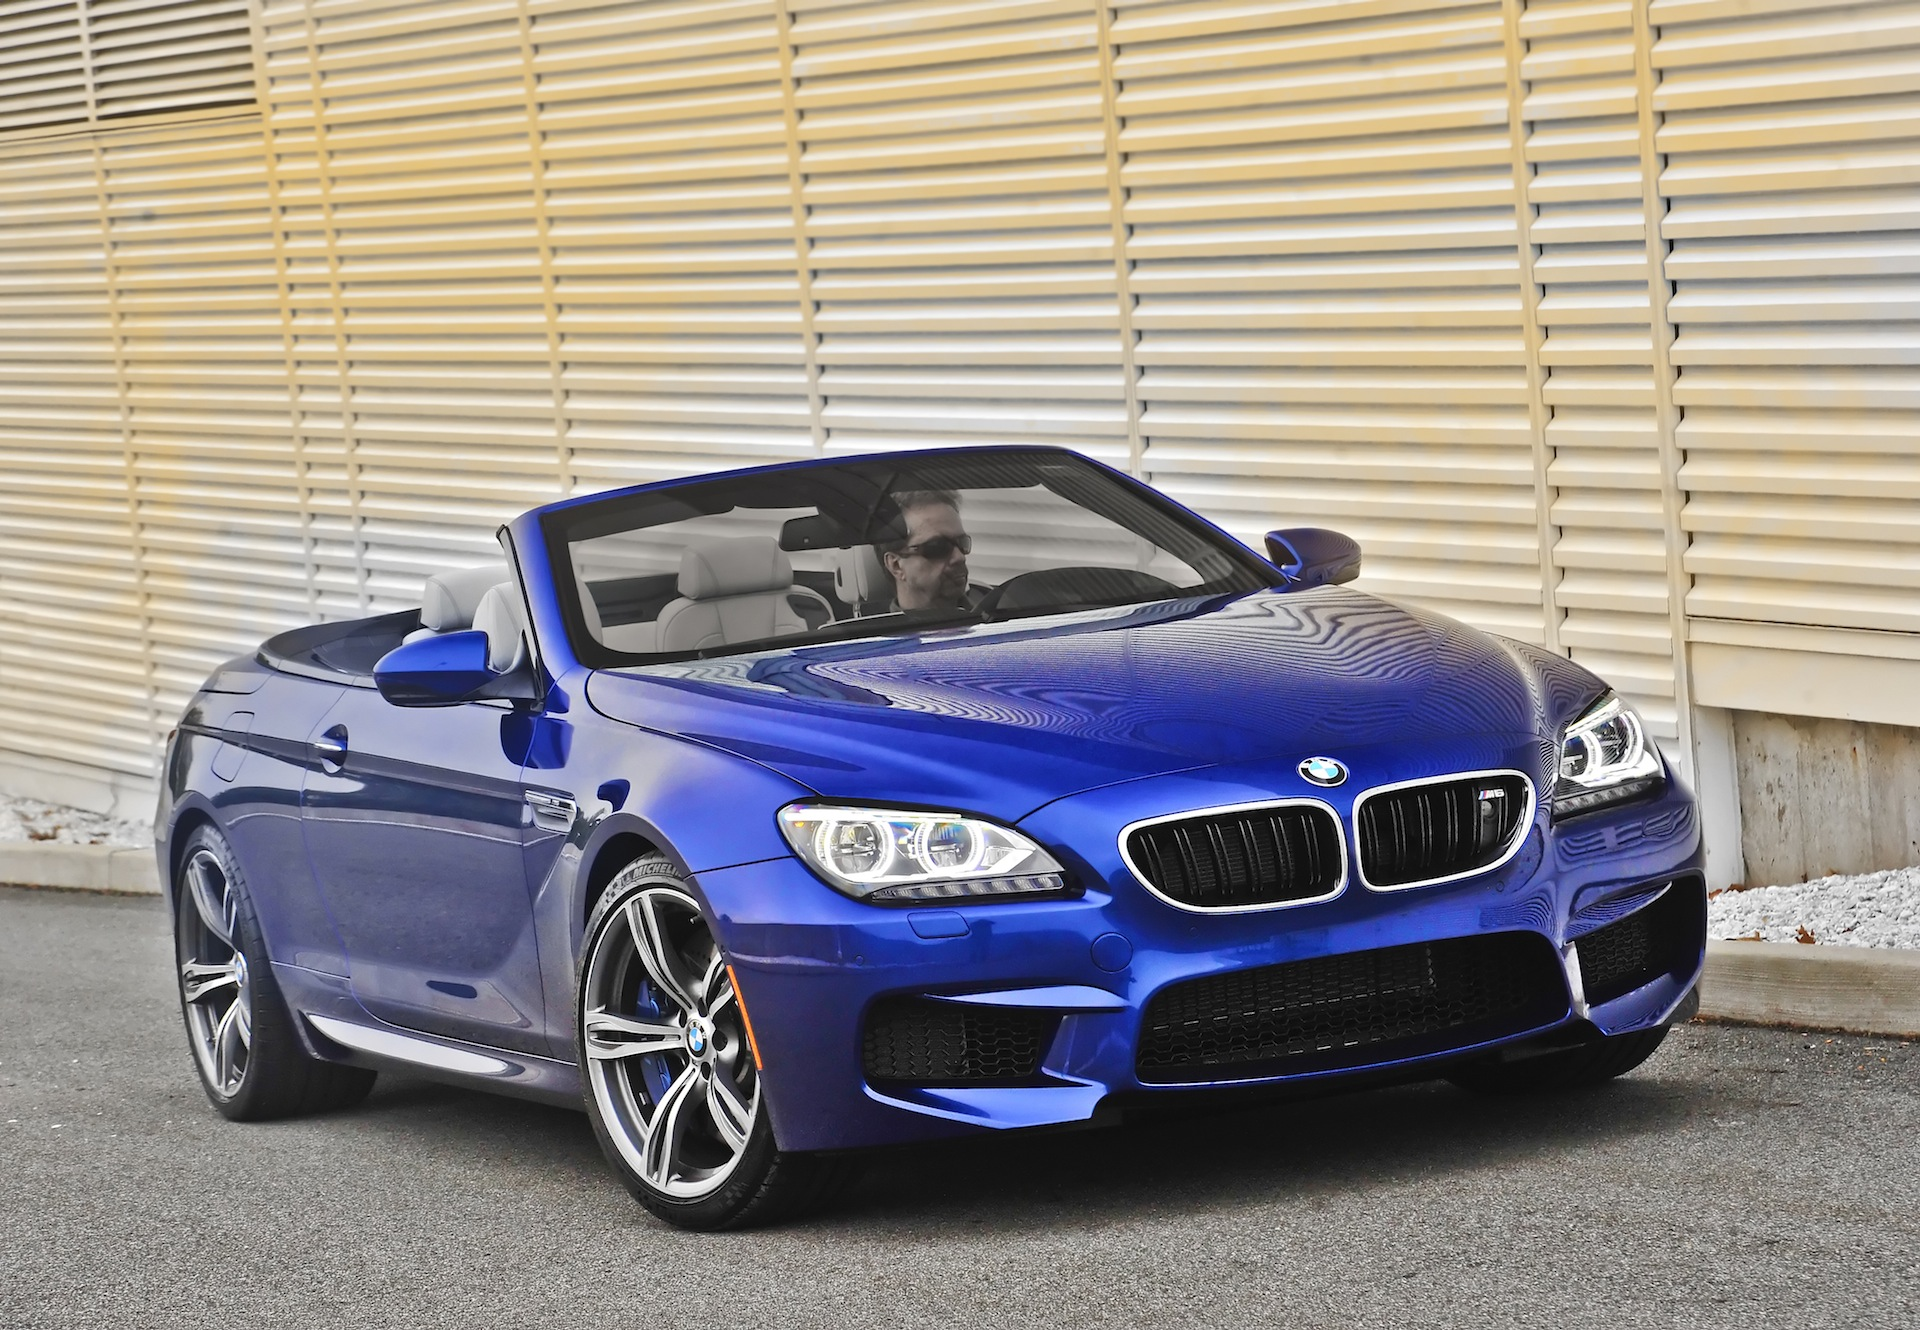 bimmerpost first drive 2012 bmw m6 convertible f12 review. Black Bedroom Furniture Sets. Home Design Ideas